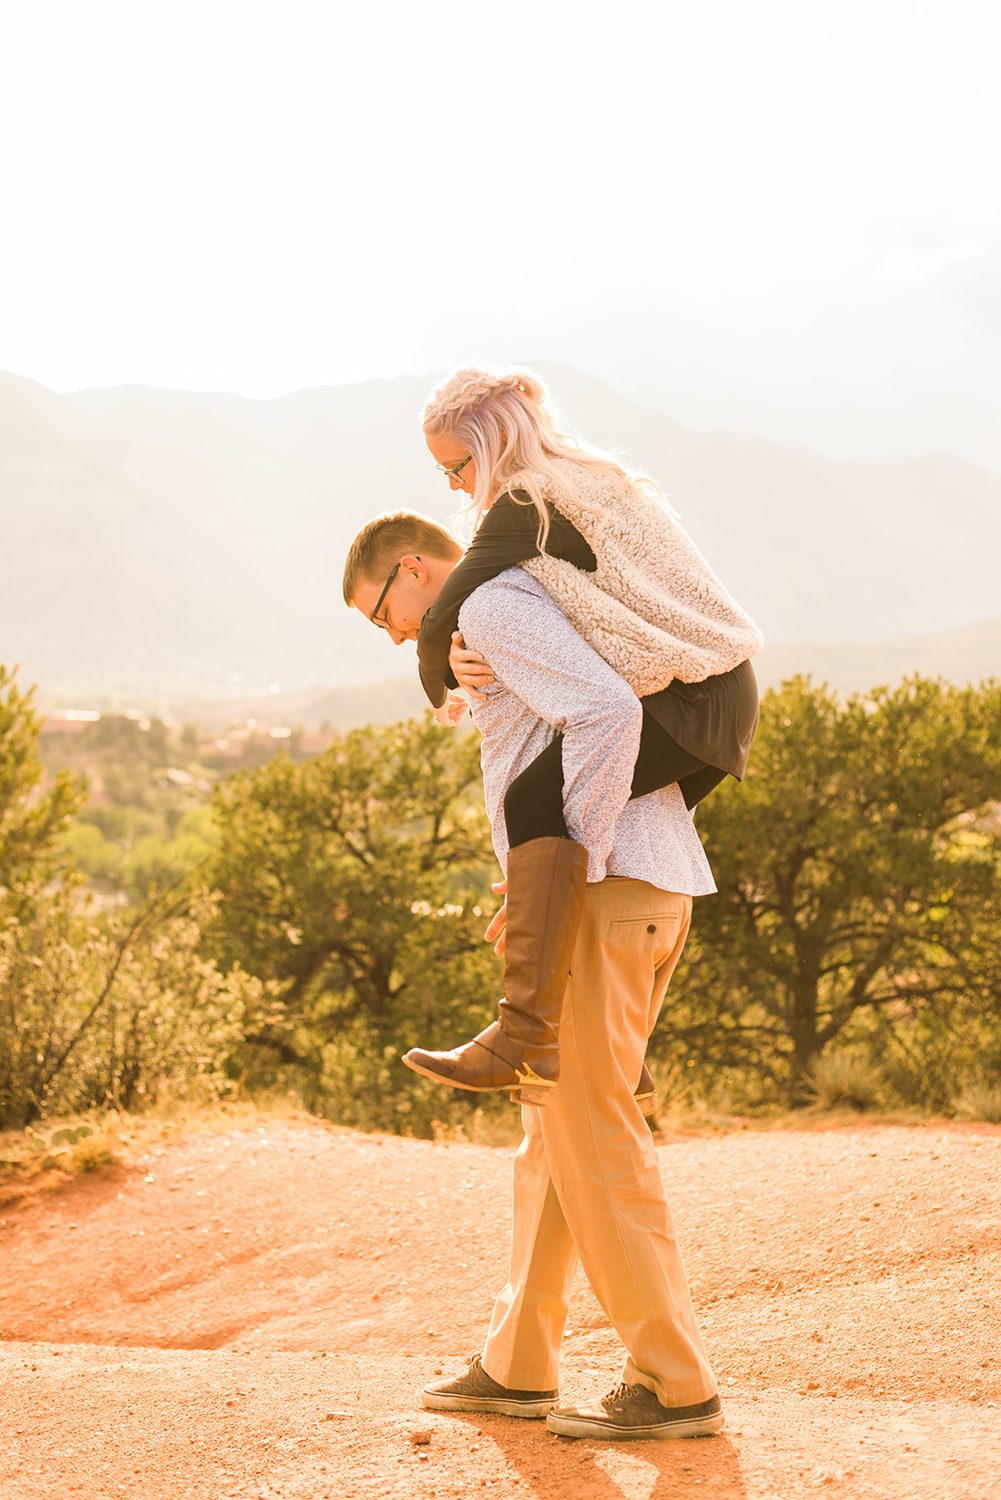 garden-of-the-gods-engagement-session-colorado-springs-wedding-photographer-k-m-12.jpg